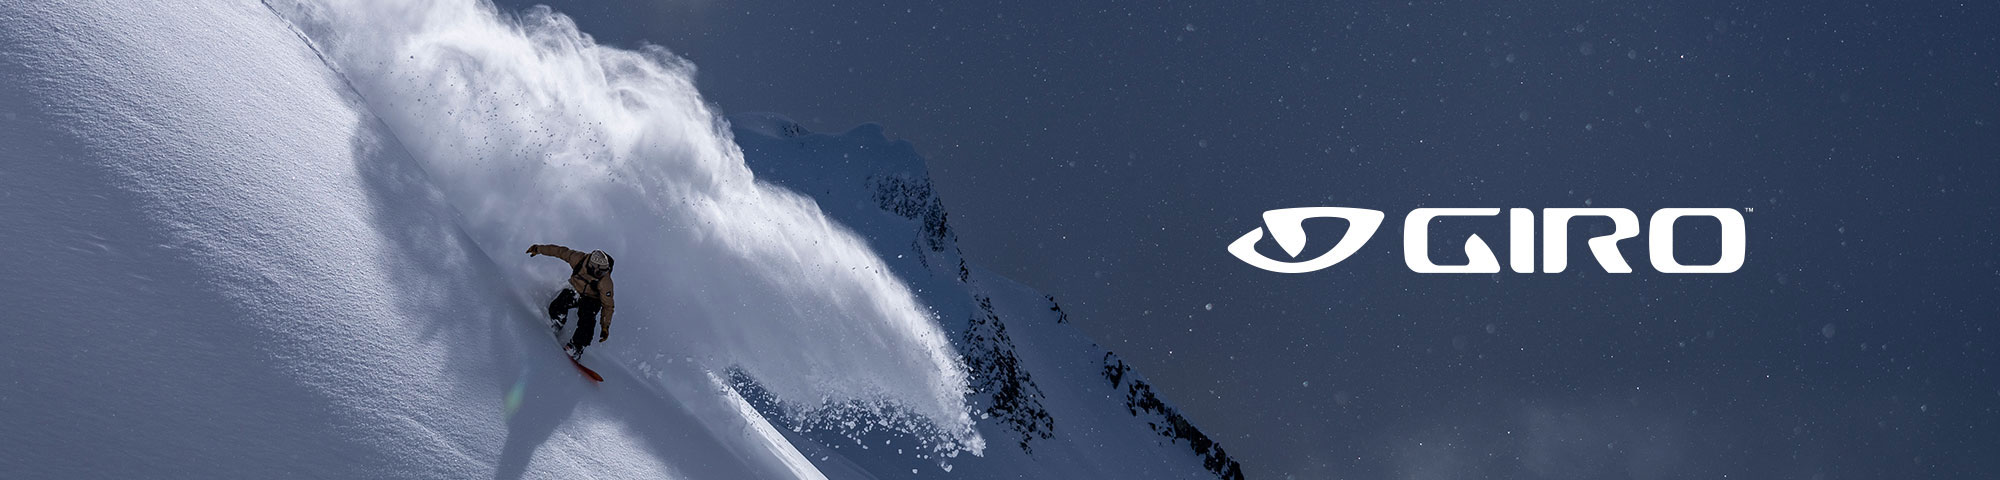 Giro Agent Prescription Ski Goggles